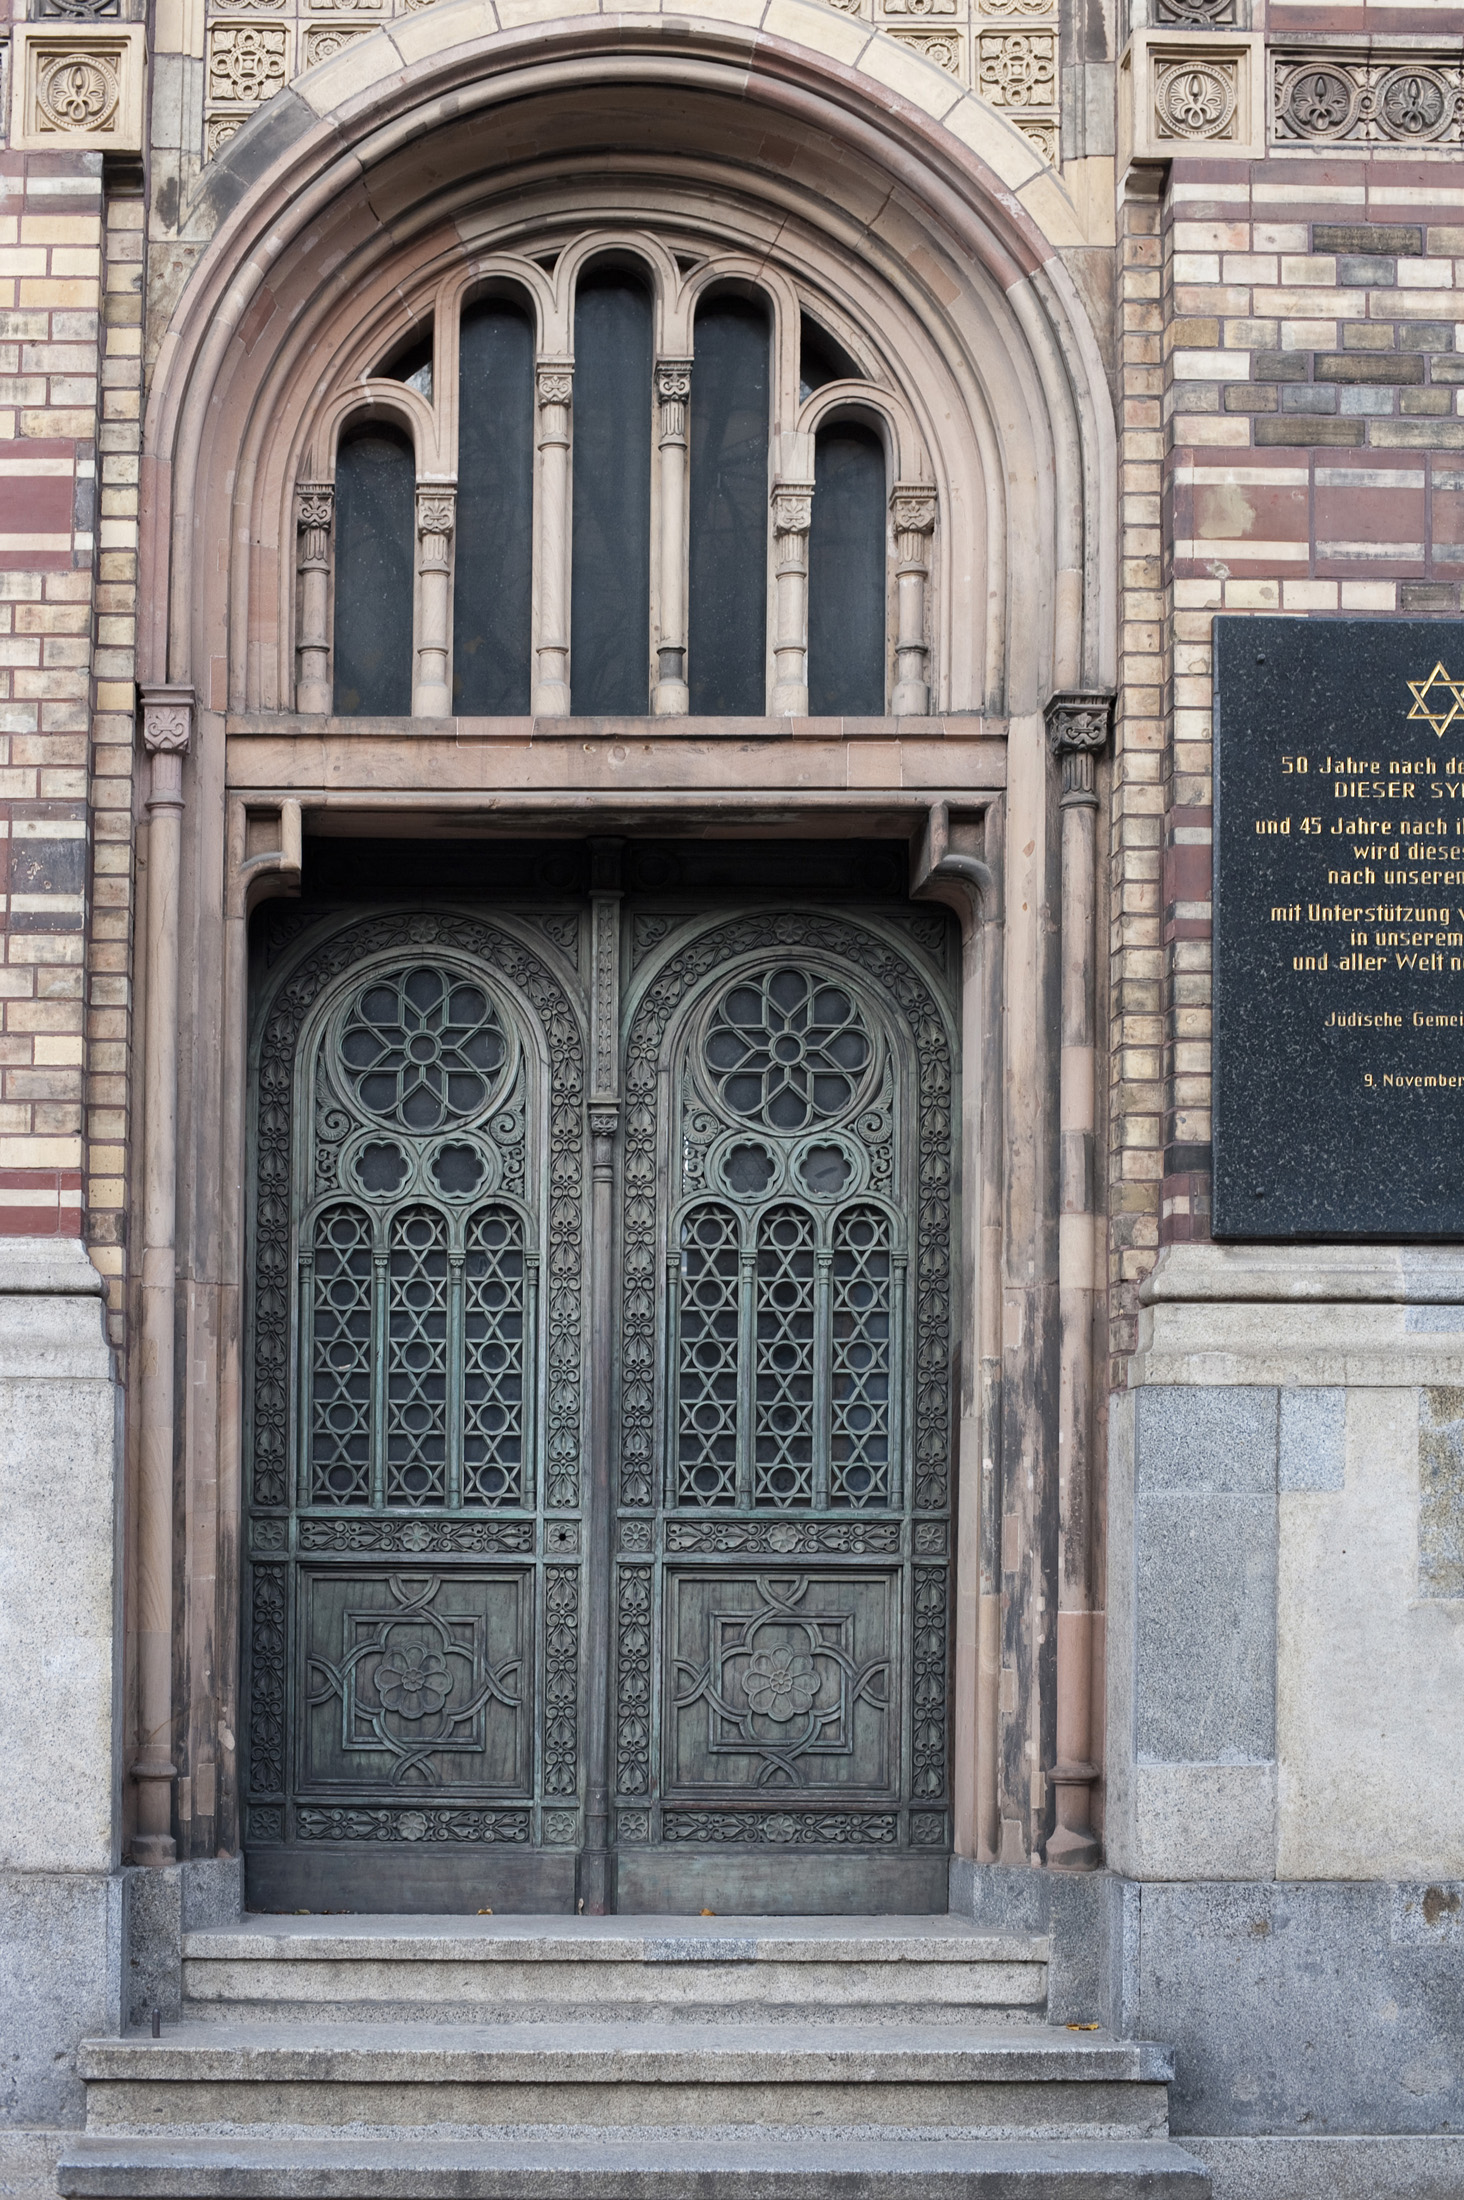 Ornate Moorish Style Entrance Door to the historic berlin new synagogue